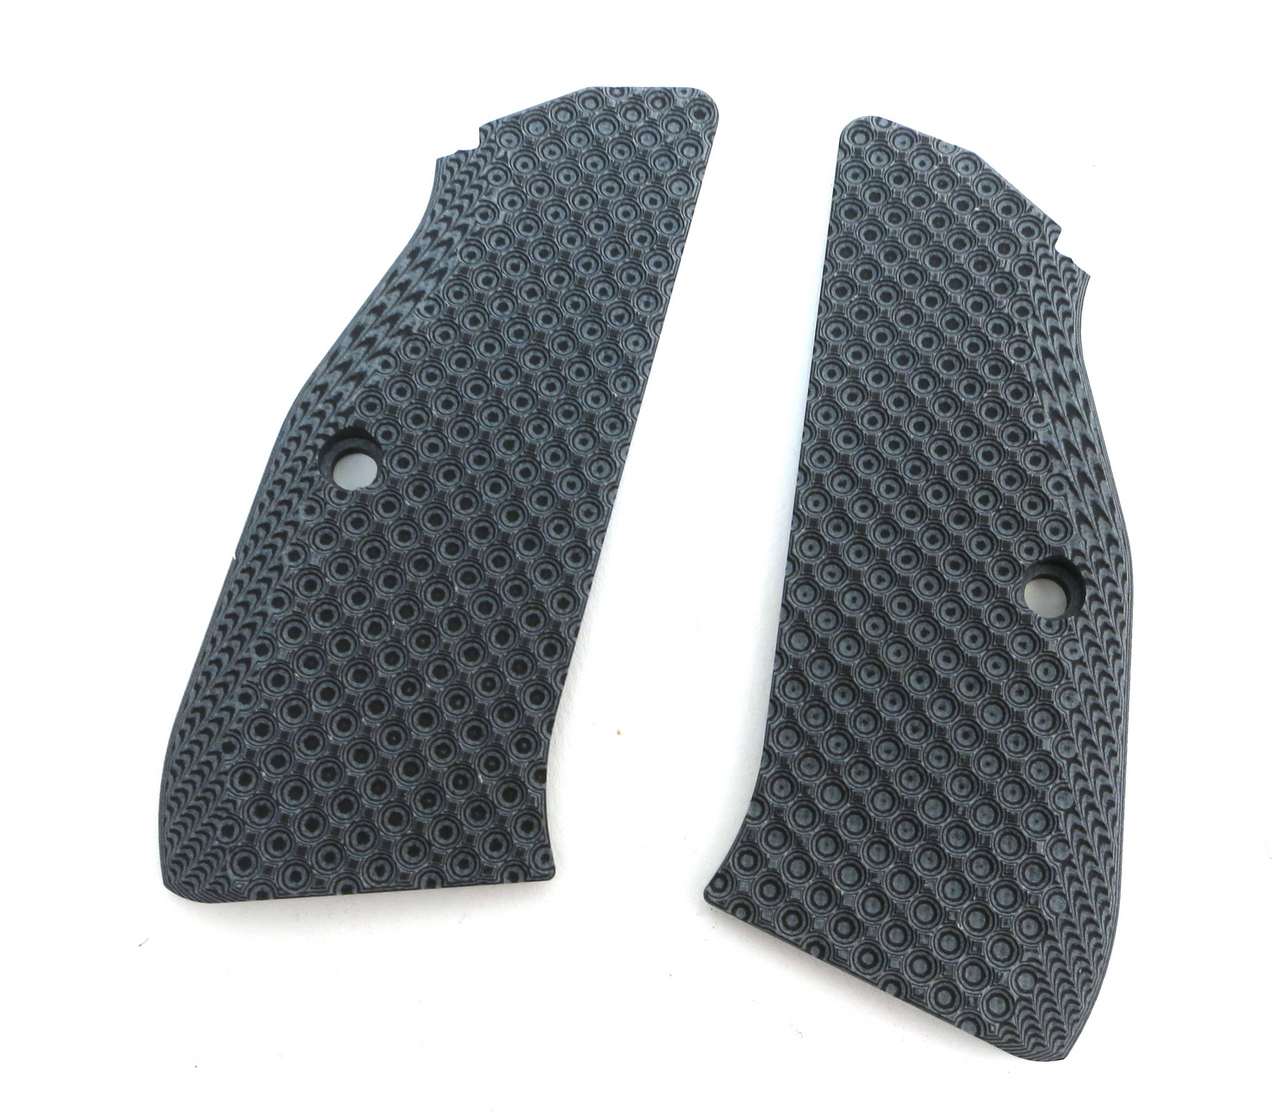 Tanfoglio Witness G10 Thin Grips by LOK Grips